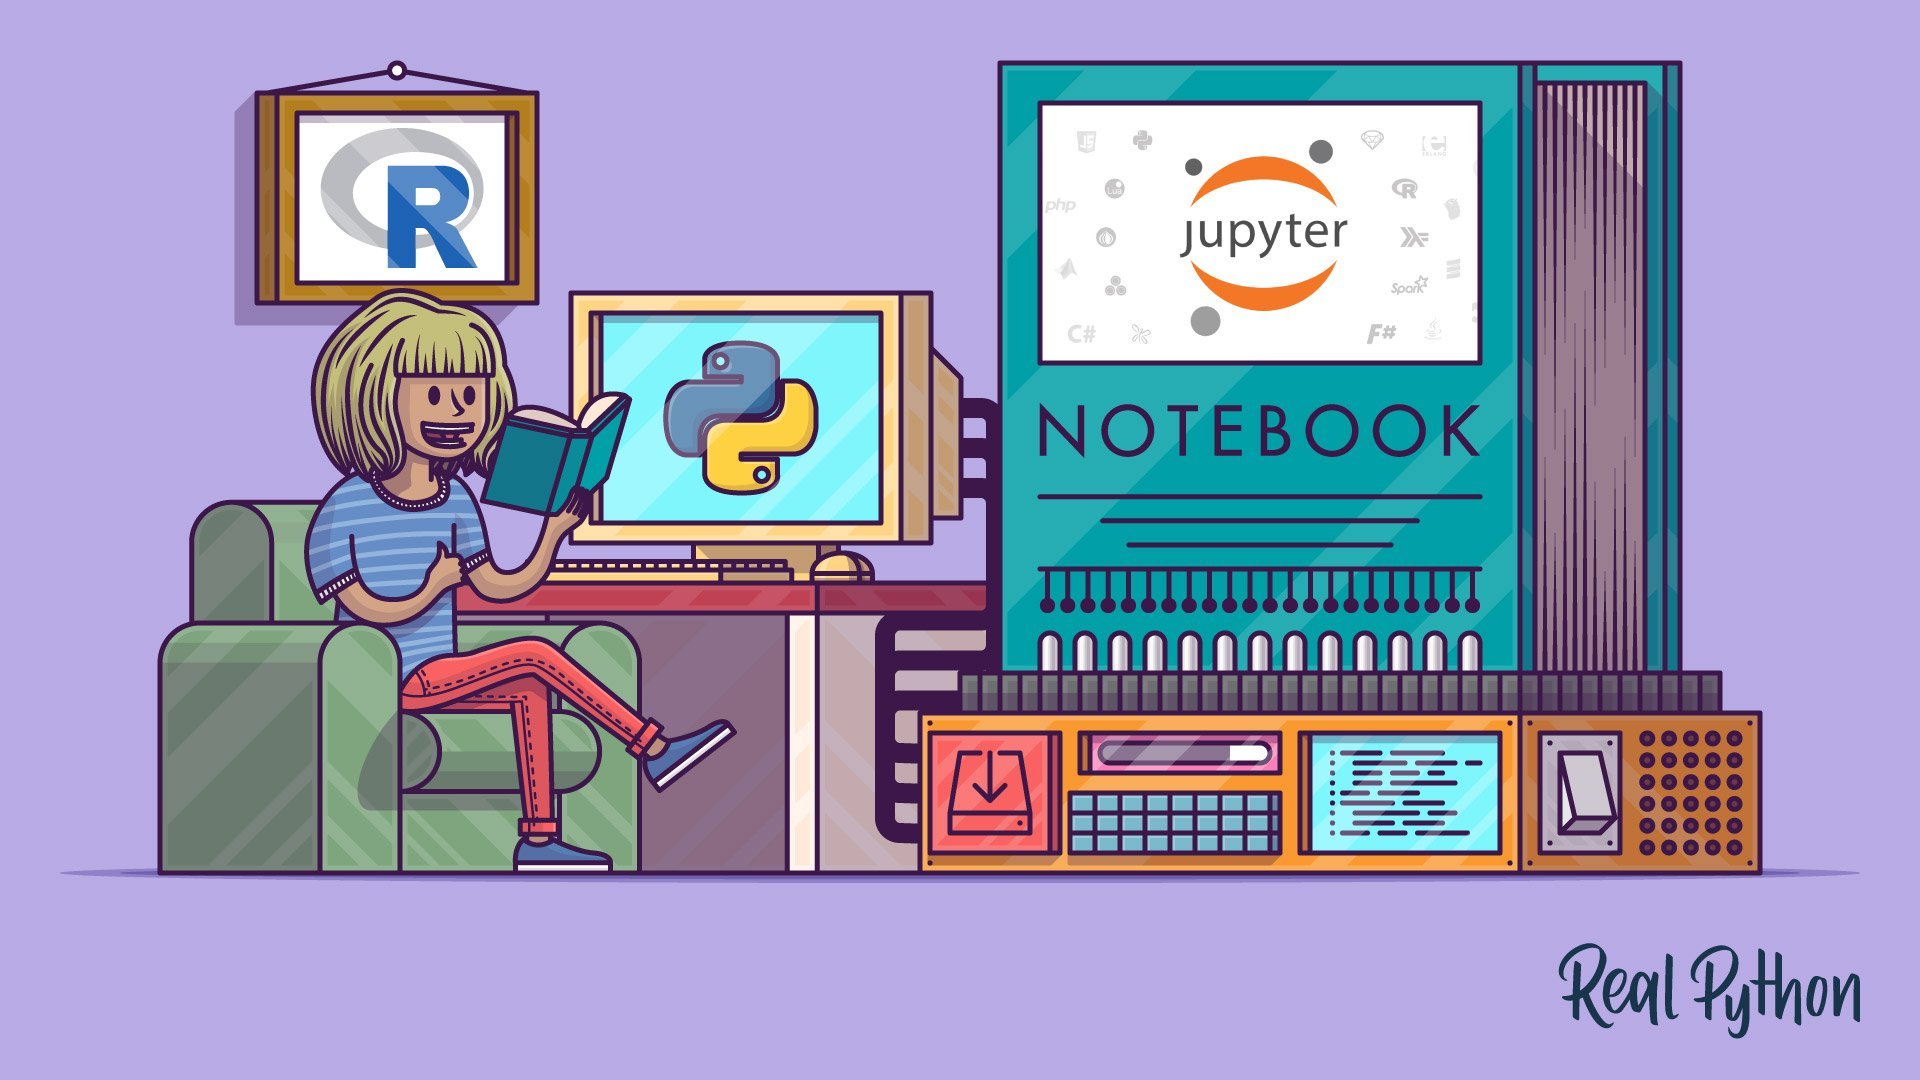 Jupyter Notebook: An Introduction